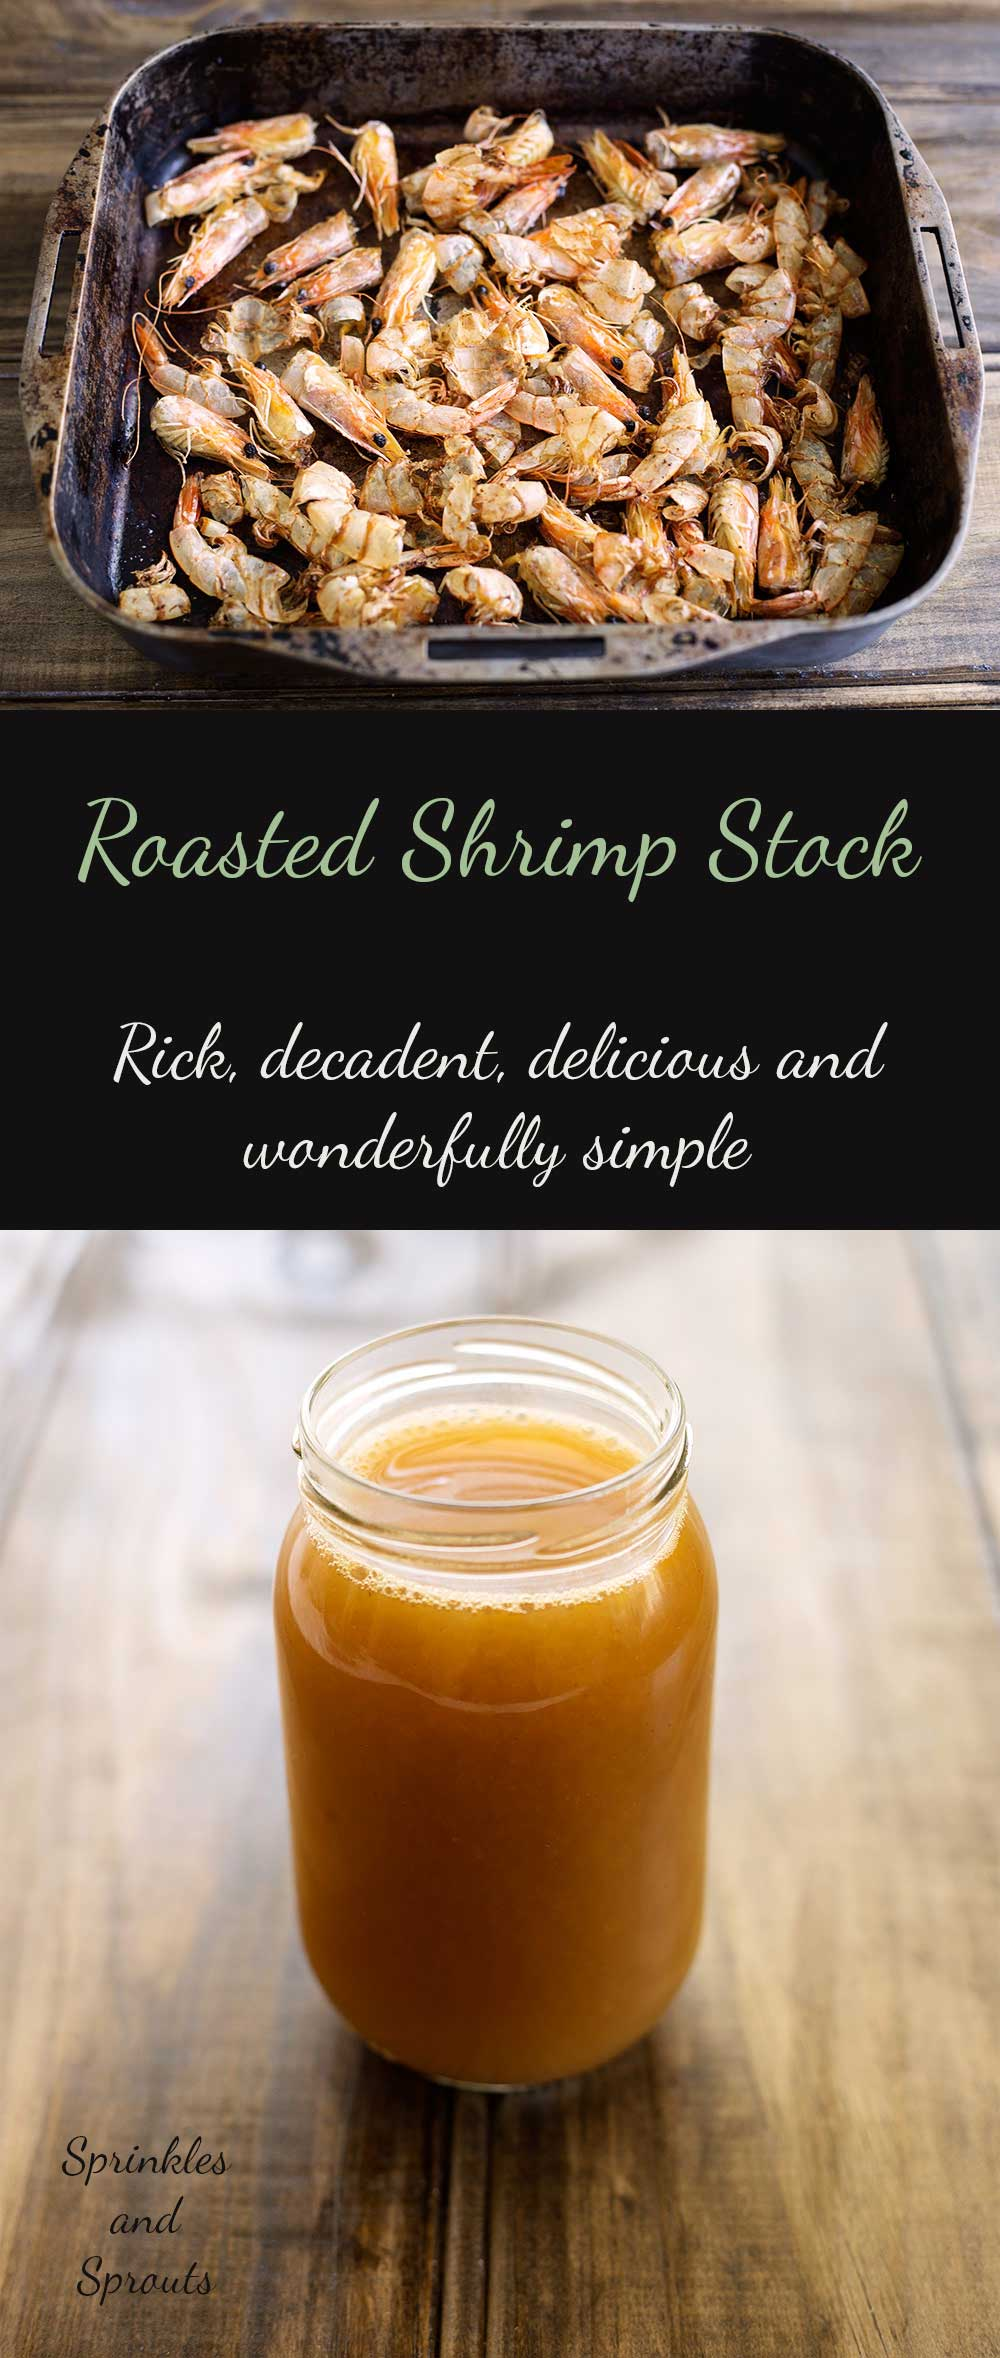 Roasted Shrimp Stock, so wonderfully rich, so wonderfully delicious and so wonderfully decadent. Yet it is light and super simple. Winning Recipe!!!